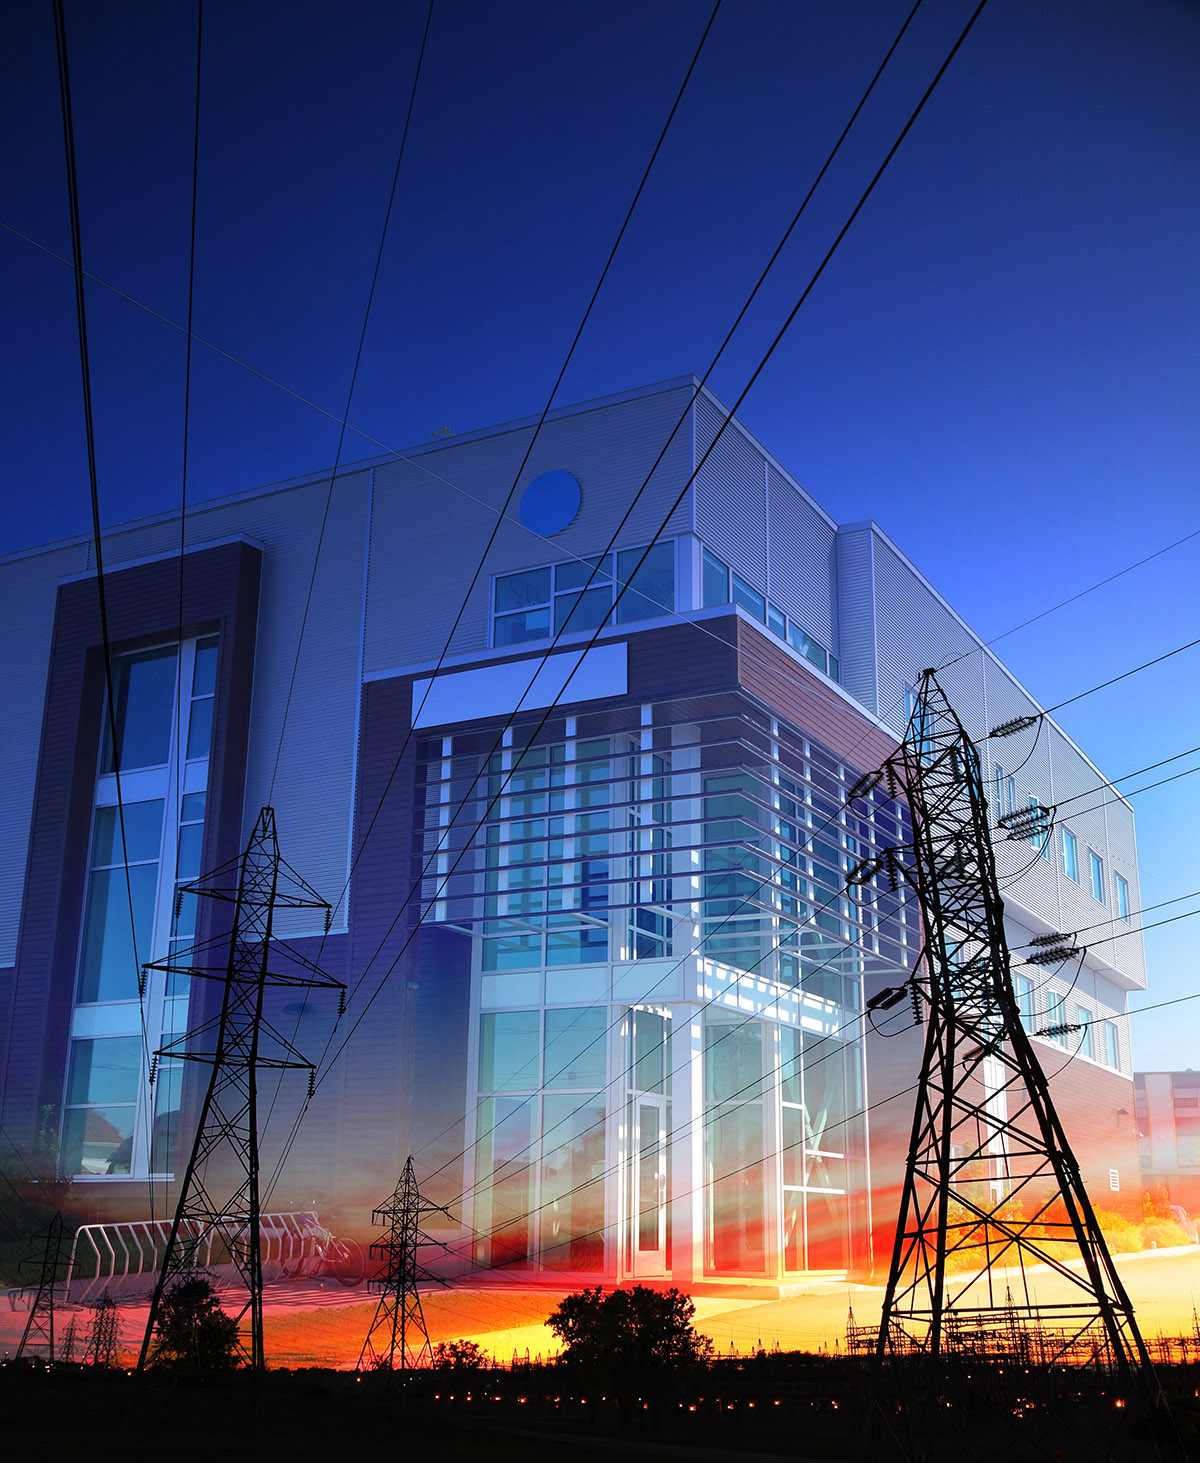 Office Building with Electric Pylons Photo Montage - Stock Photography